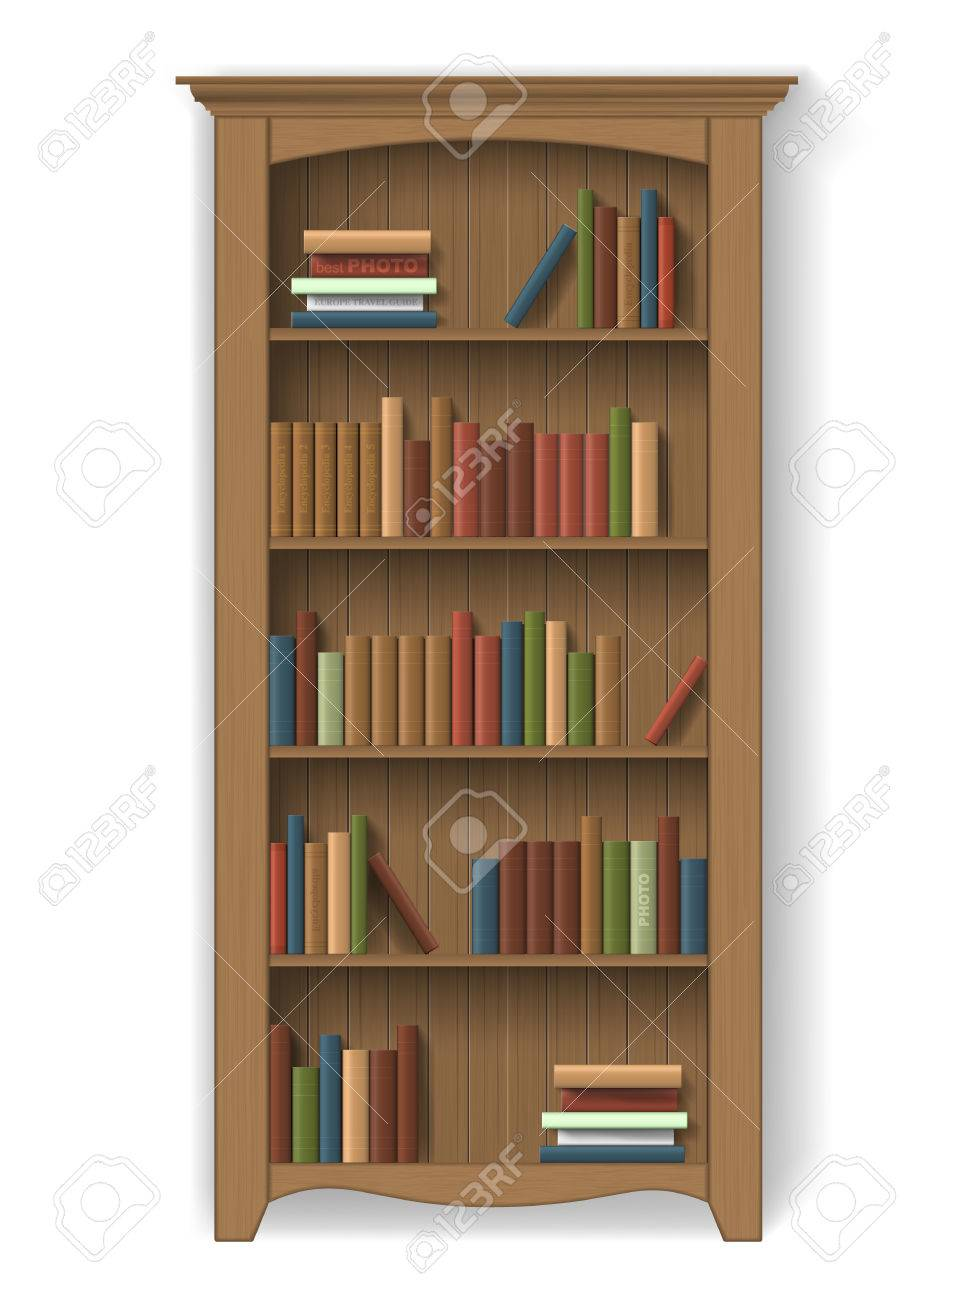 Wooden Bookcase With Books On The Shelves Furniture For Interior